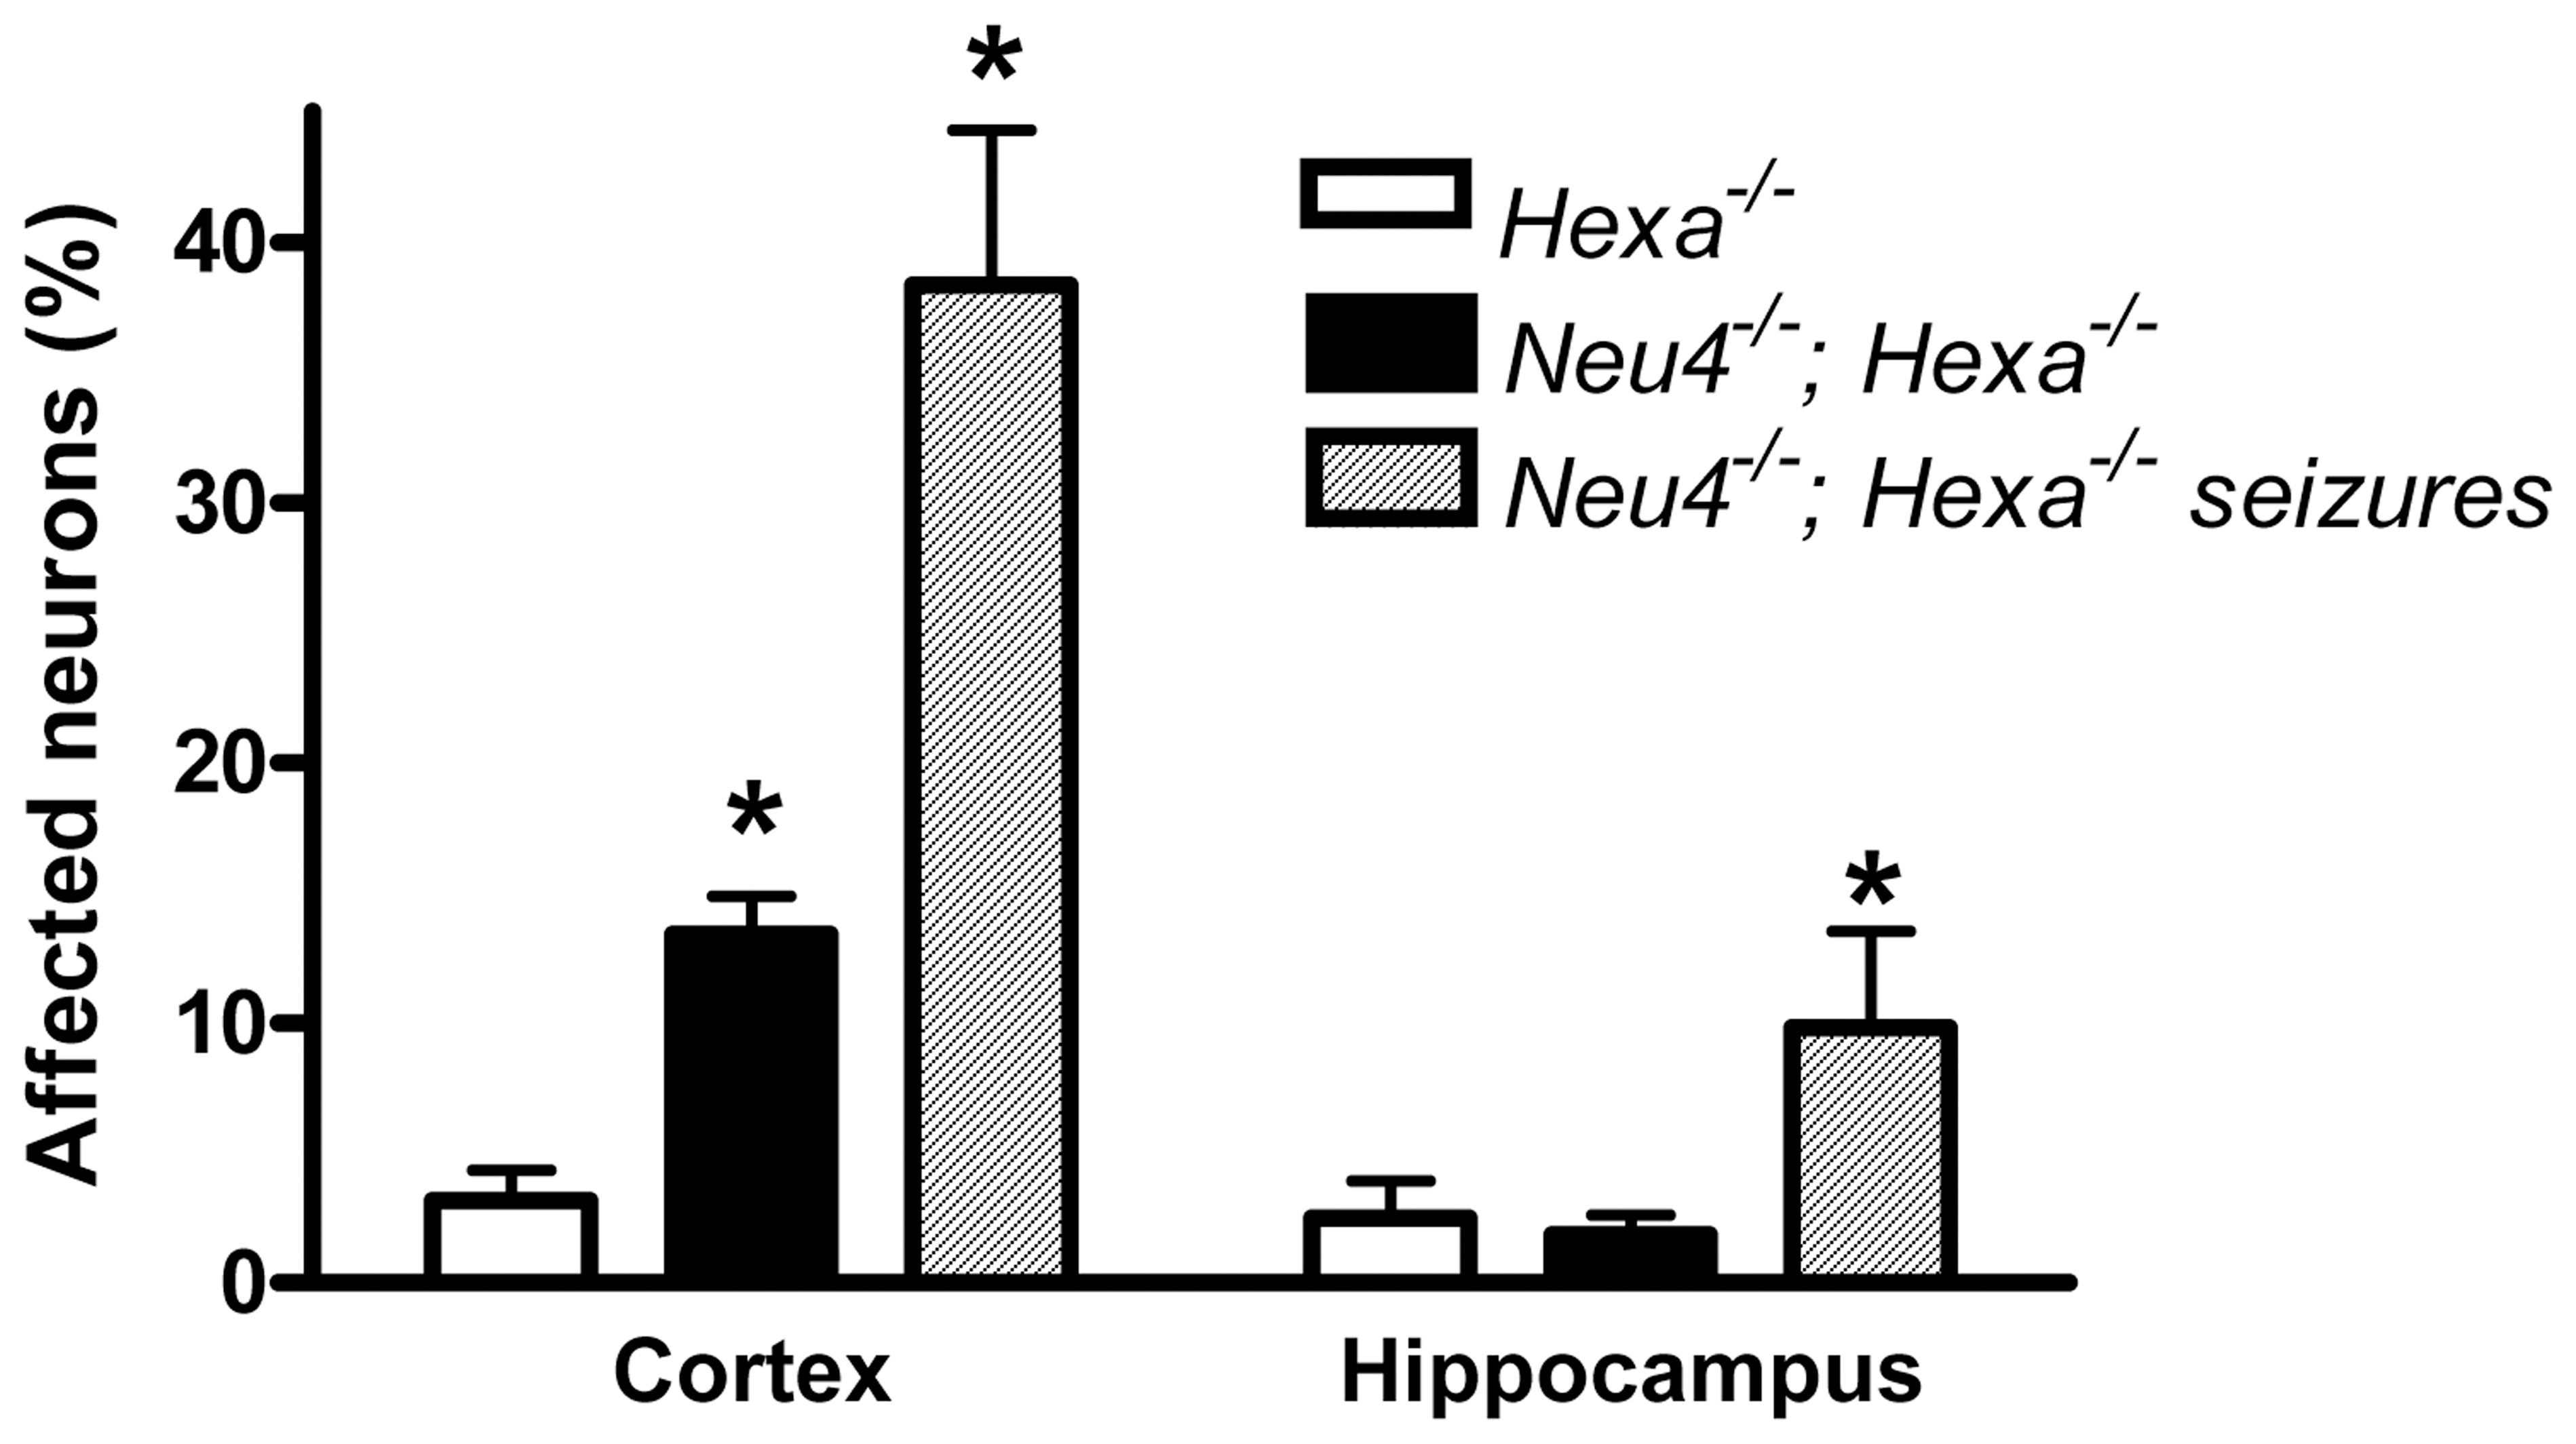 Percent of affected neurons in cortex and hippocampus.